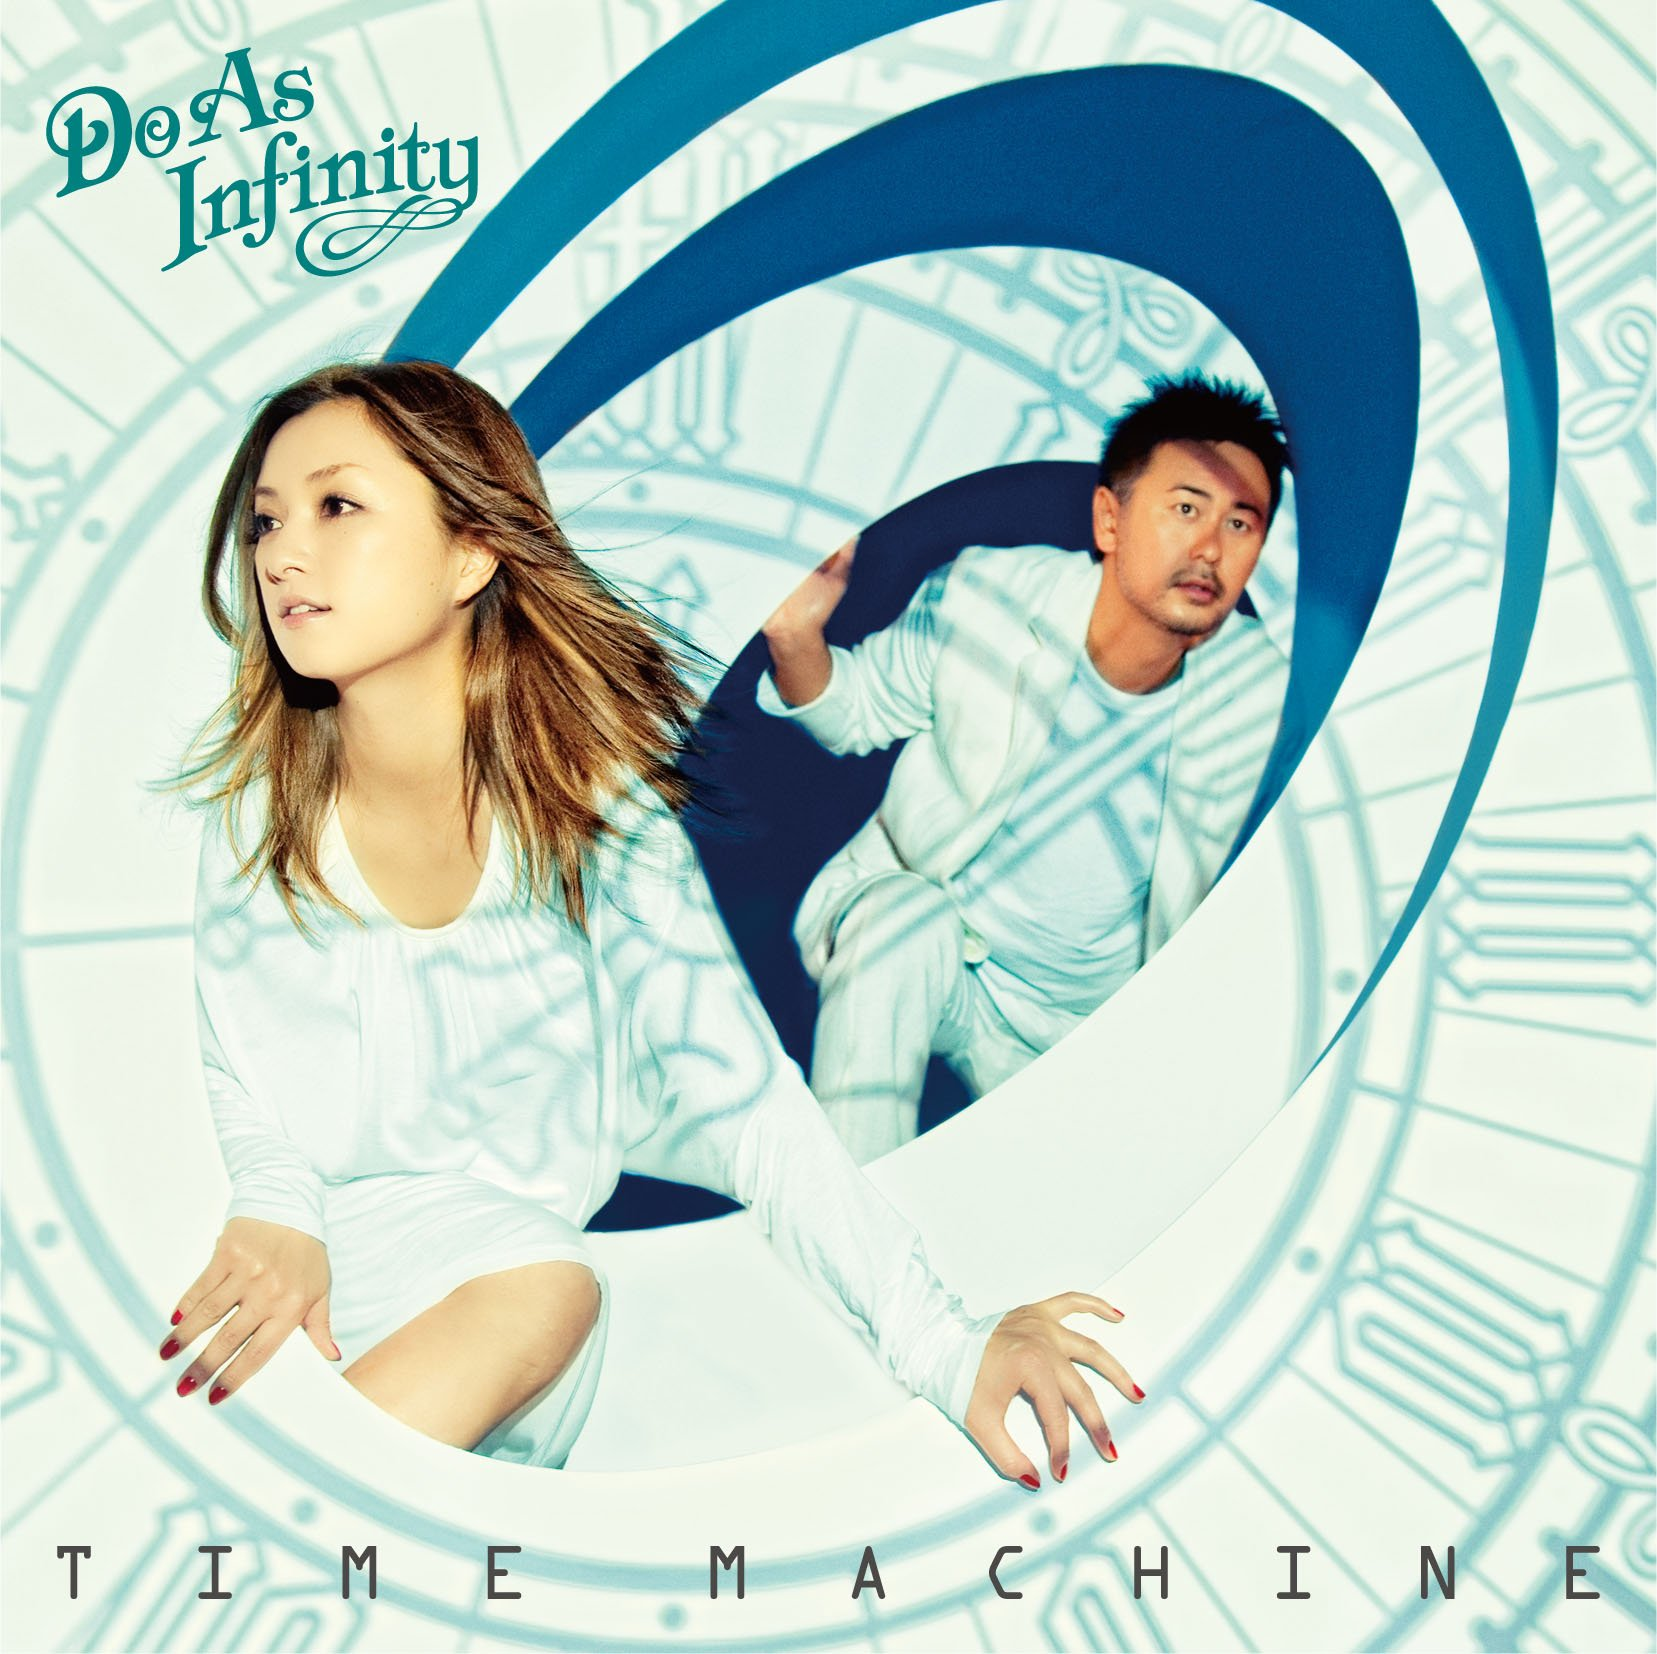 20180121.0056.02 Do As Infinity - Time Machine cover 2.jpg